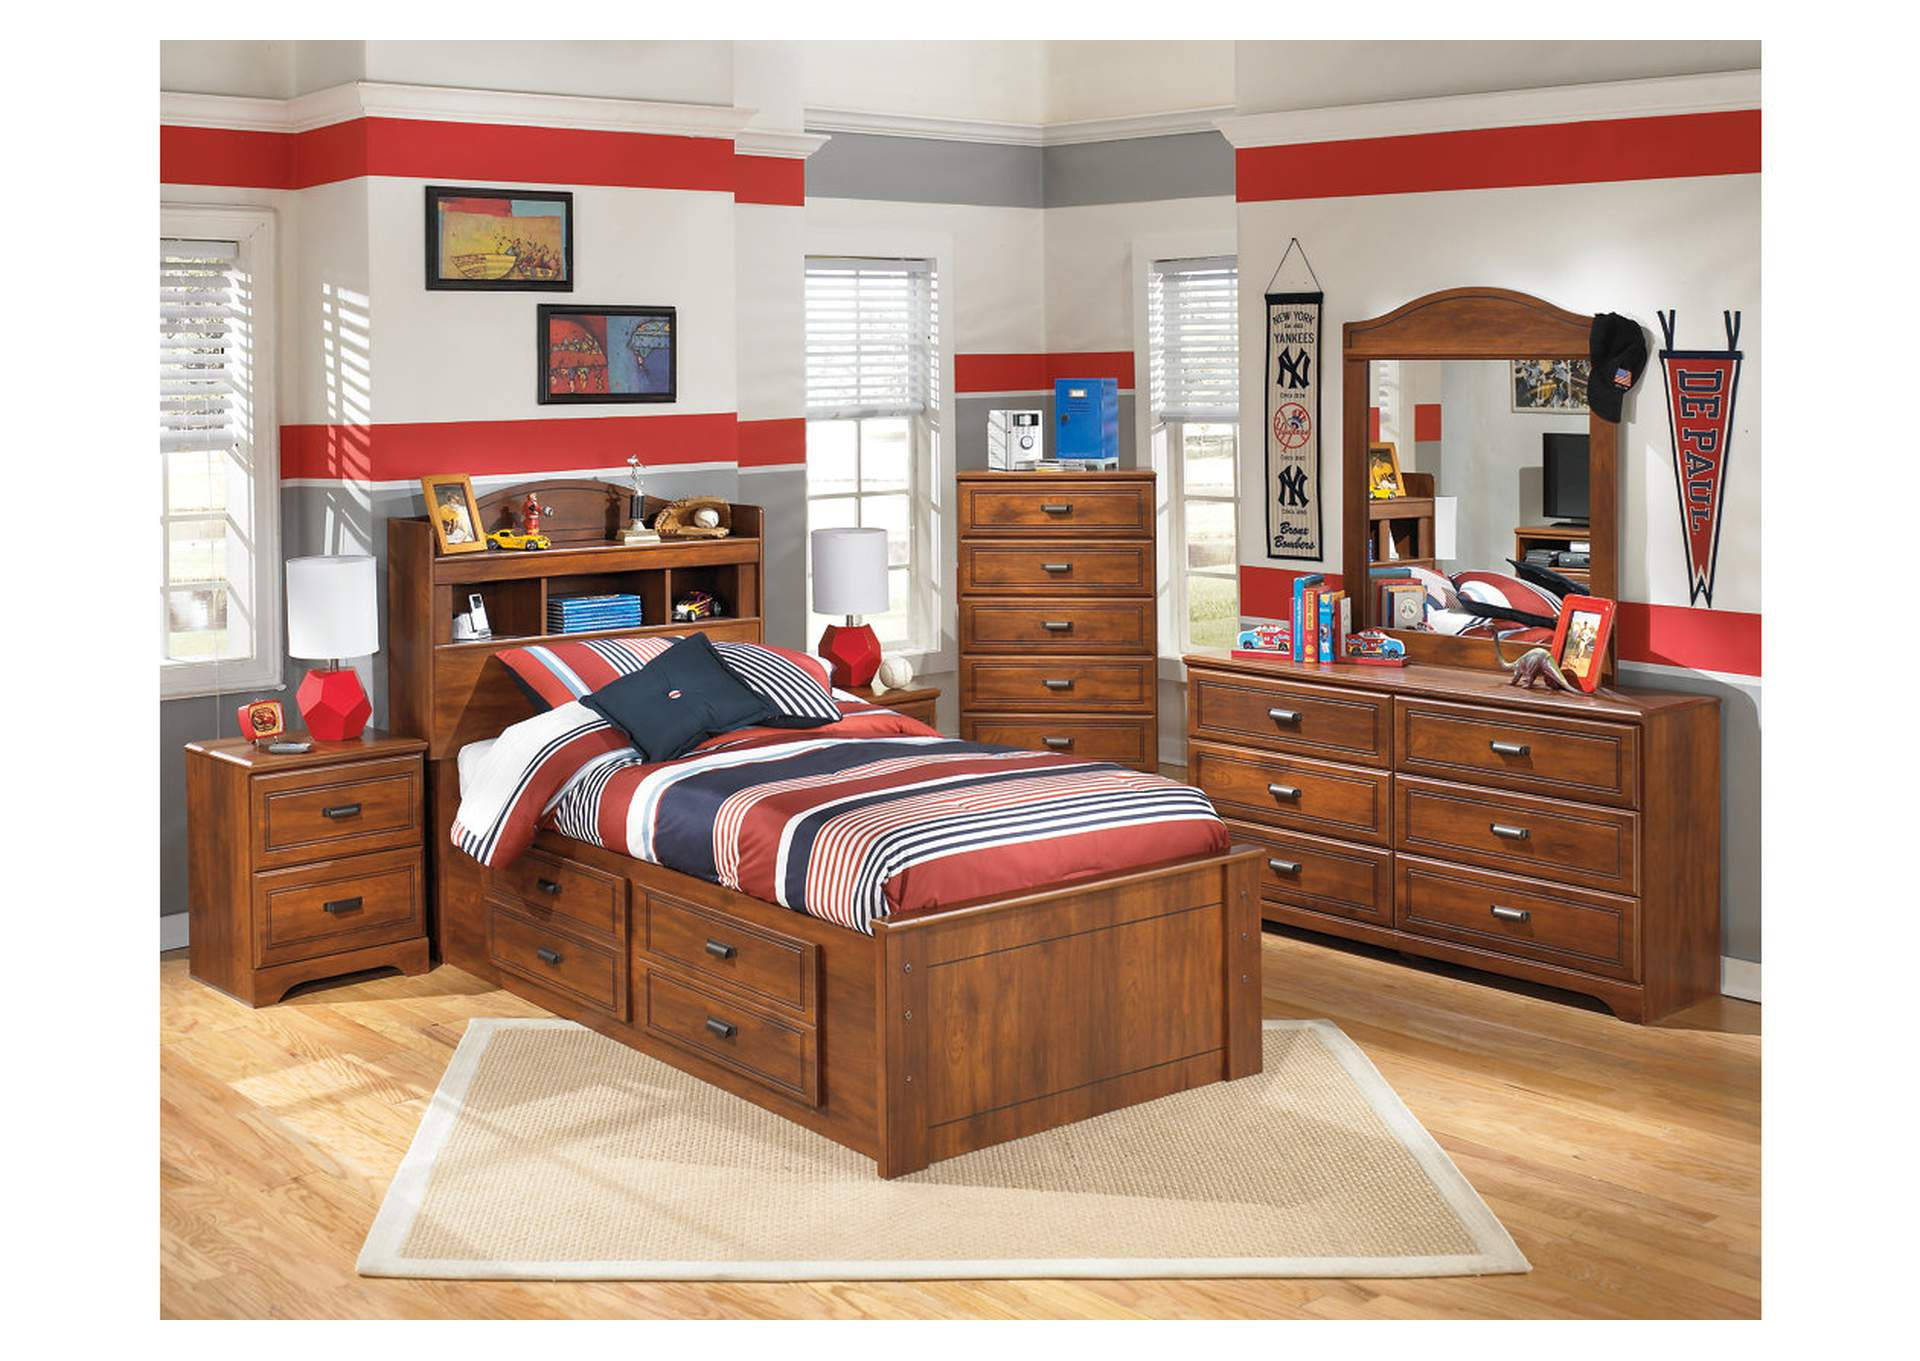 Barchan Twin Bookcase Bed w/ Storage, Dresser & Mirror,Signature Design By Ashley